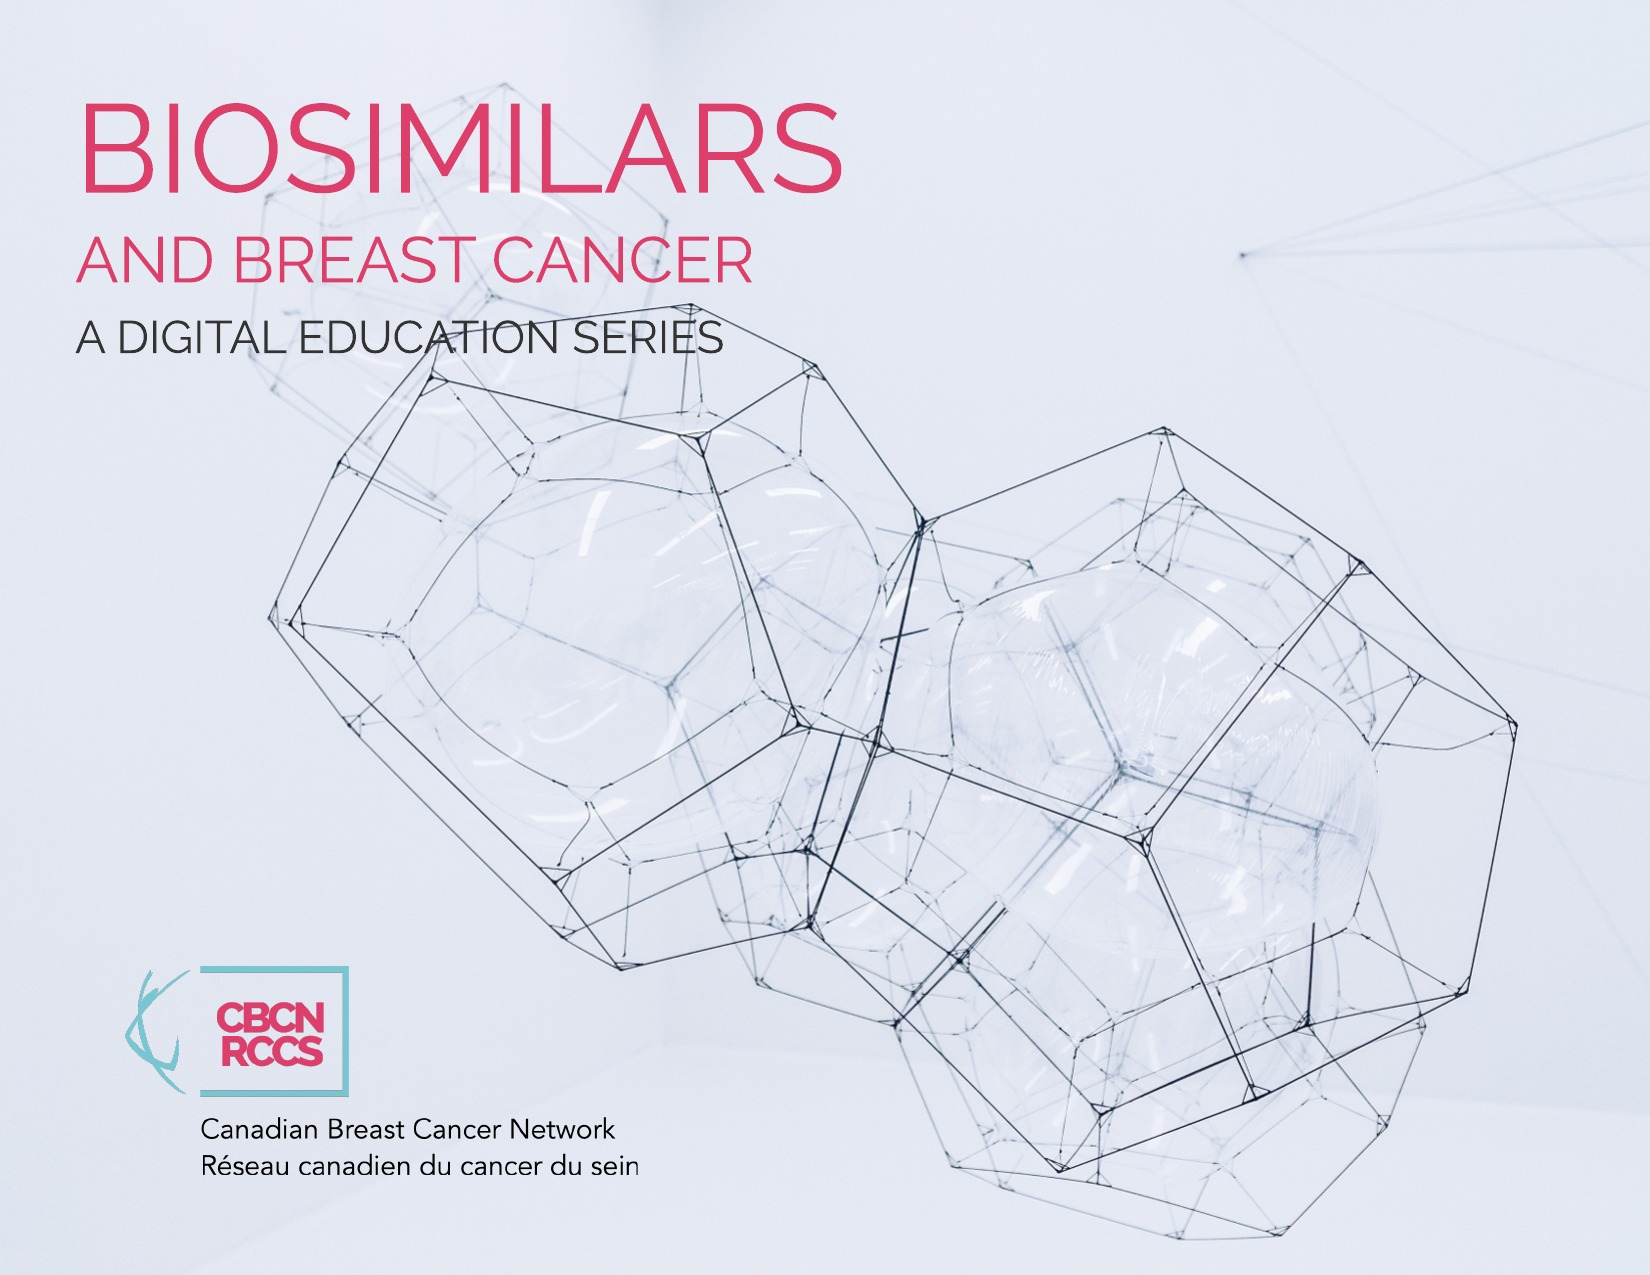 Biosimilars and breast cancer mag